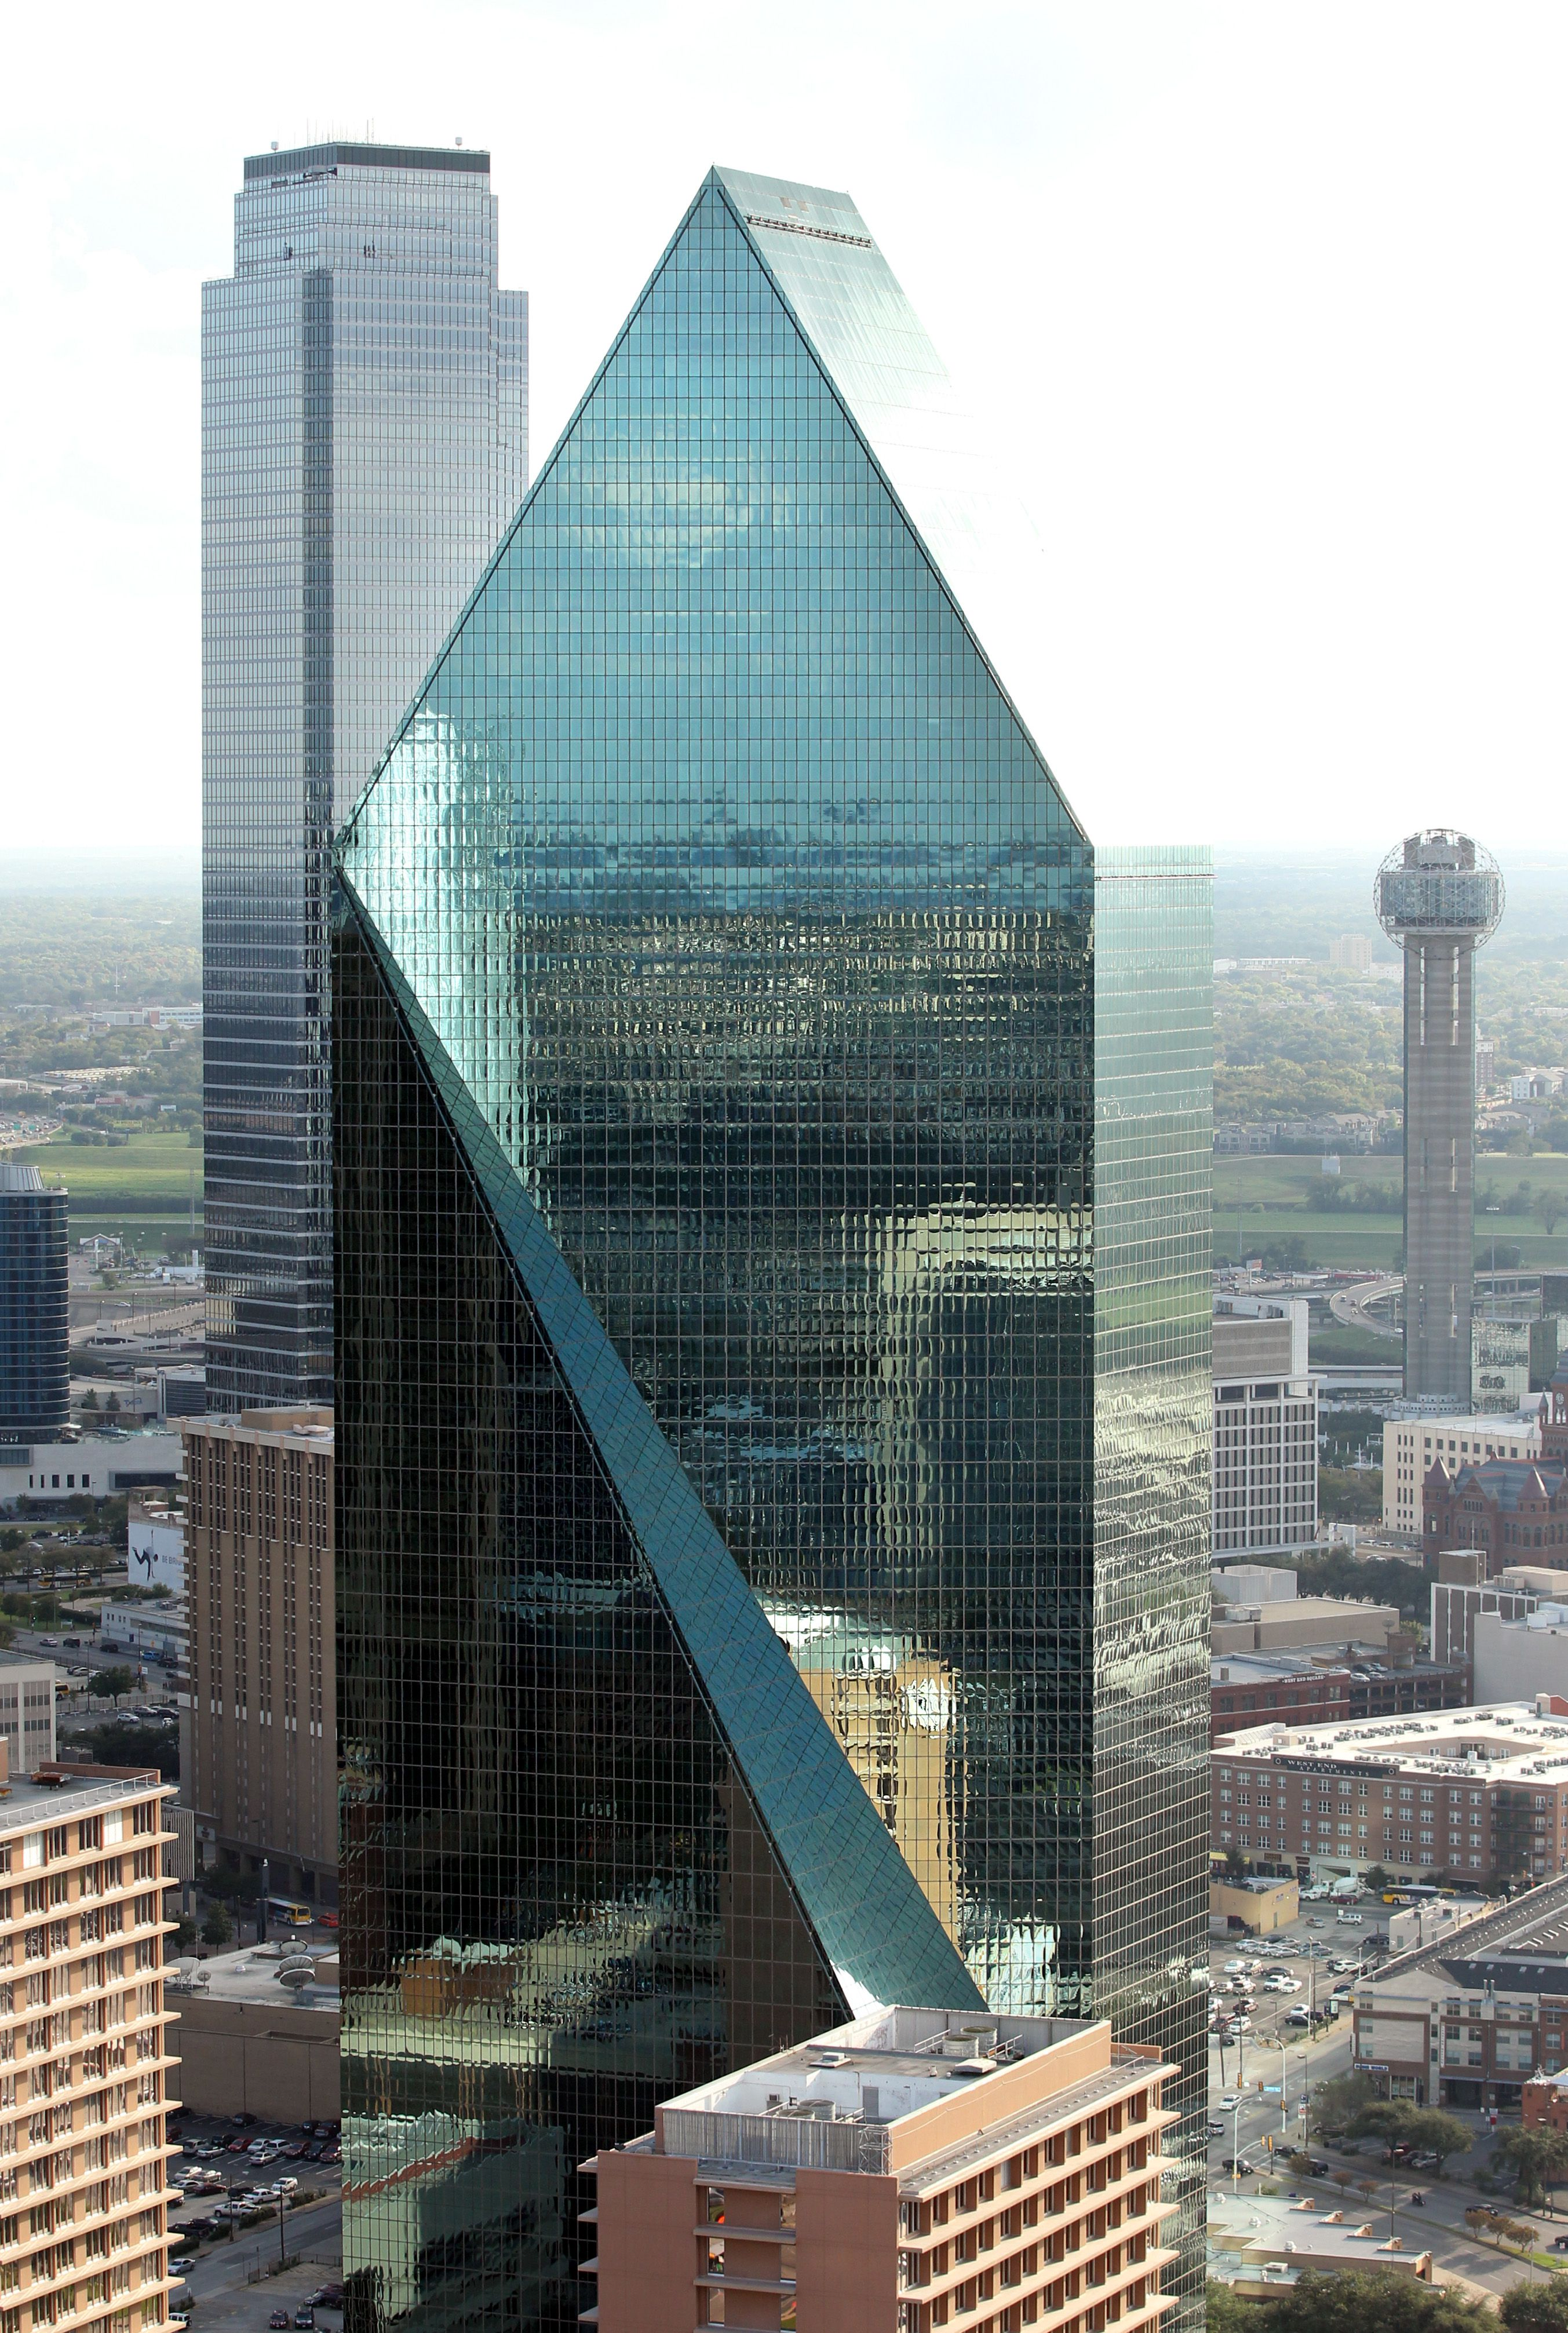 Architect of Fountain Place who shaped Dallas, dies at 93